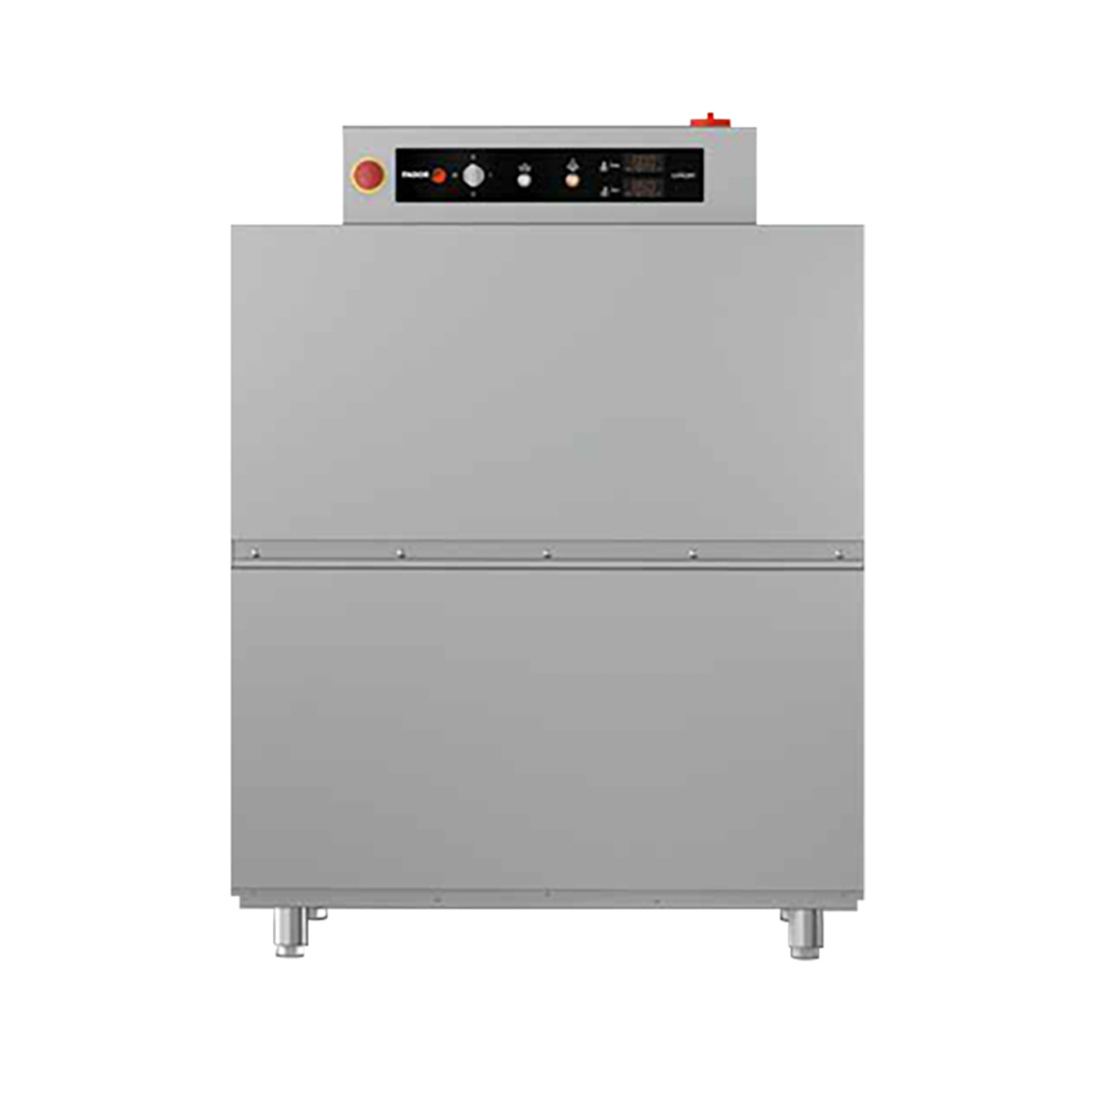 Electric conveyor dishwasher - CCO-120DCW